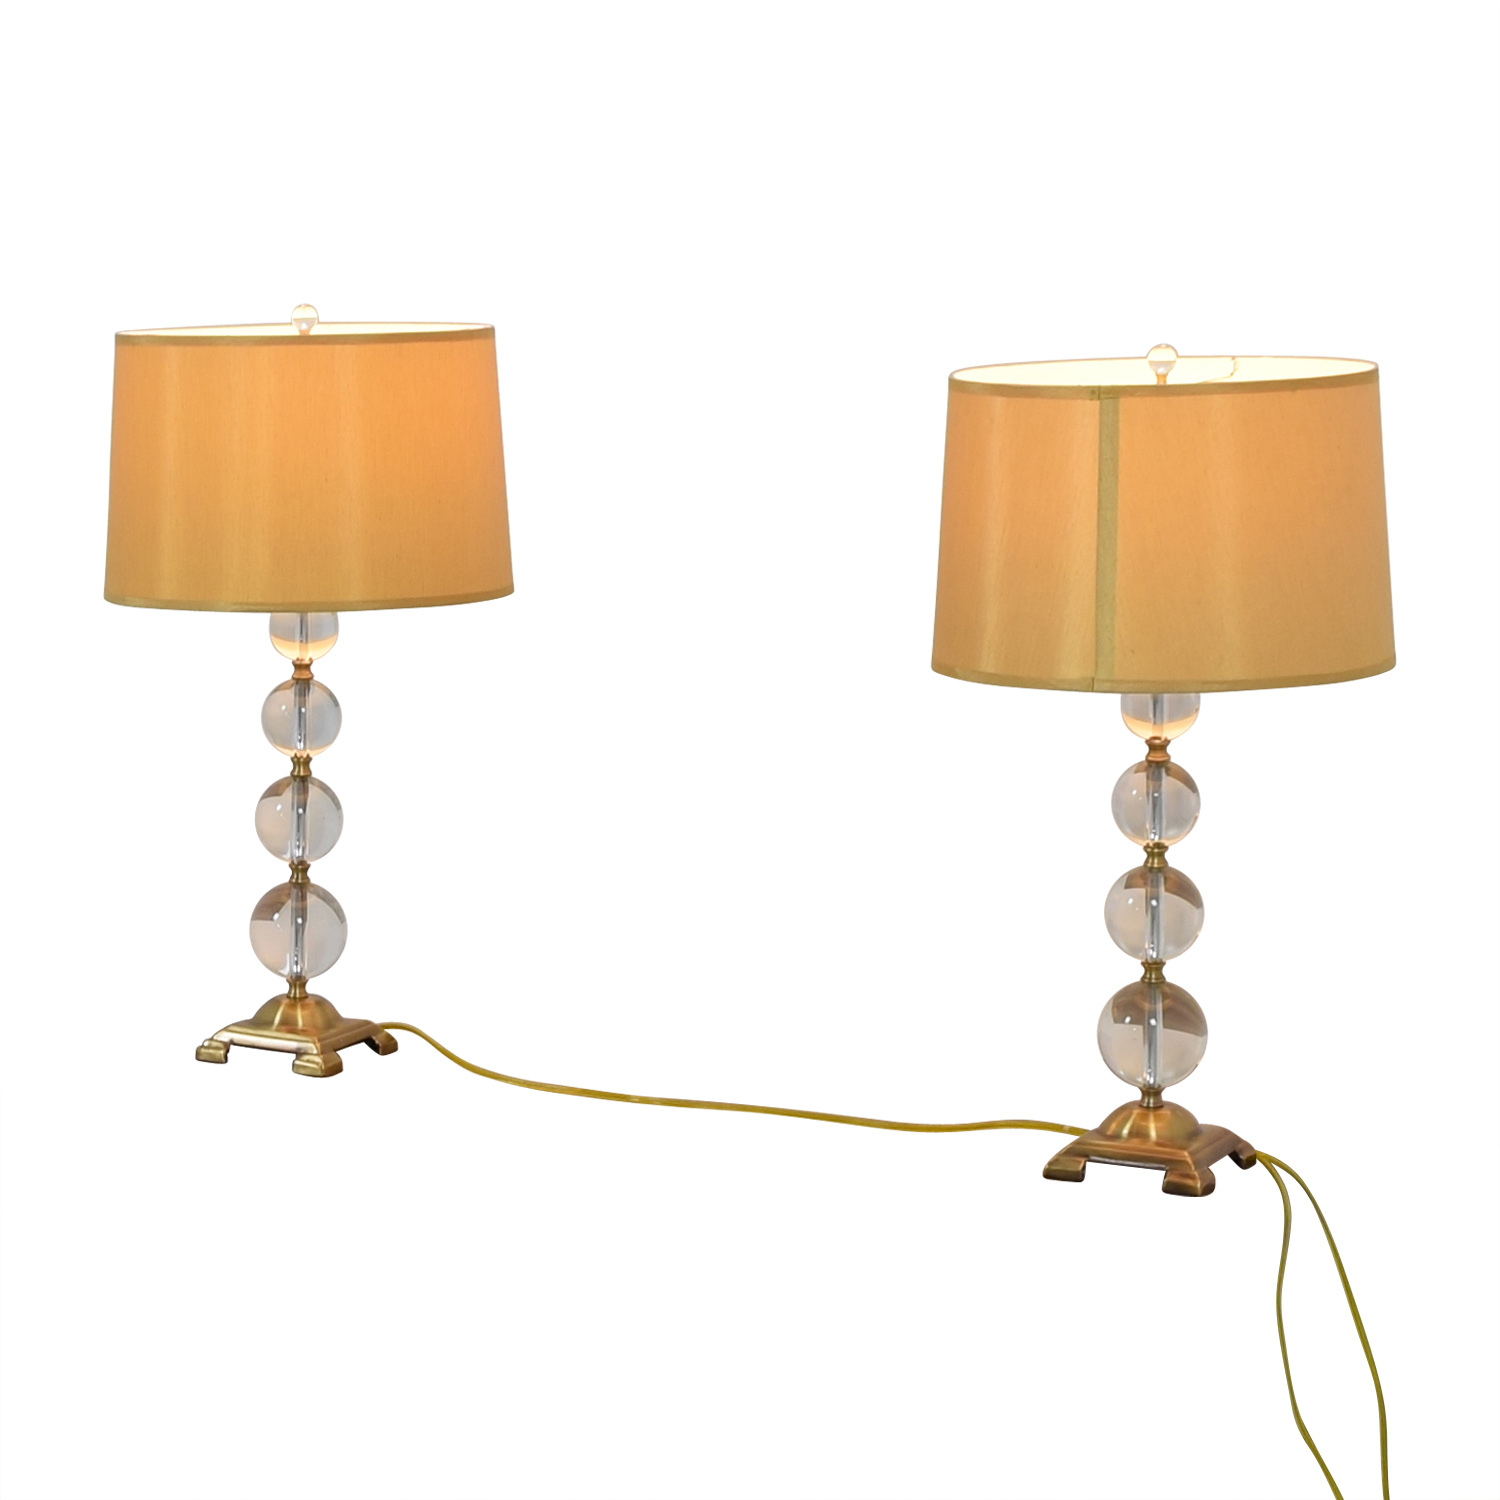 Neiman Marcus Neiman Marcus Glass Globe Lamps dimensions